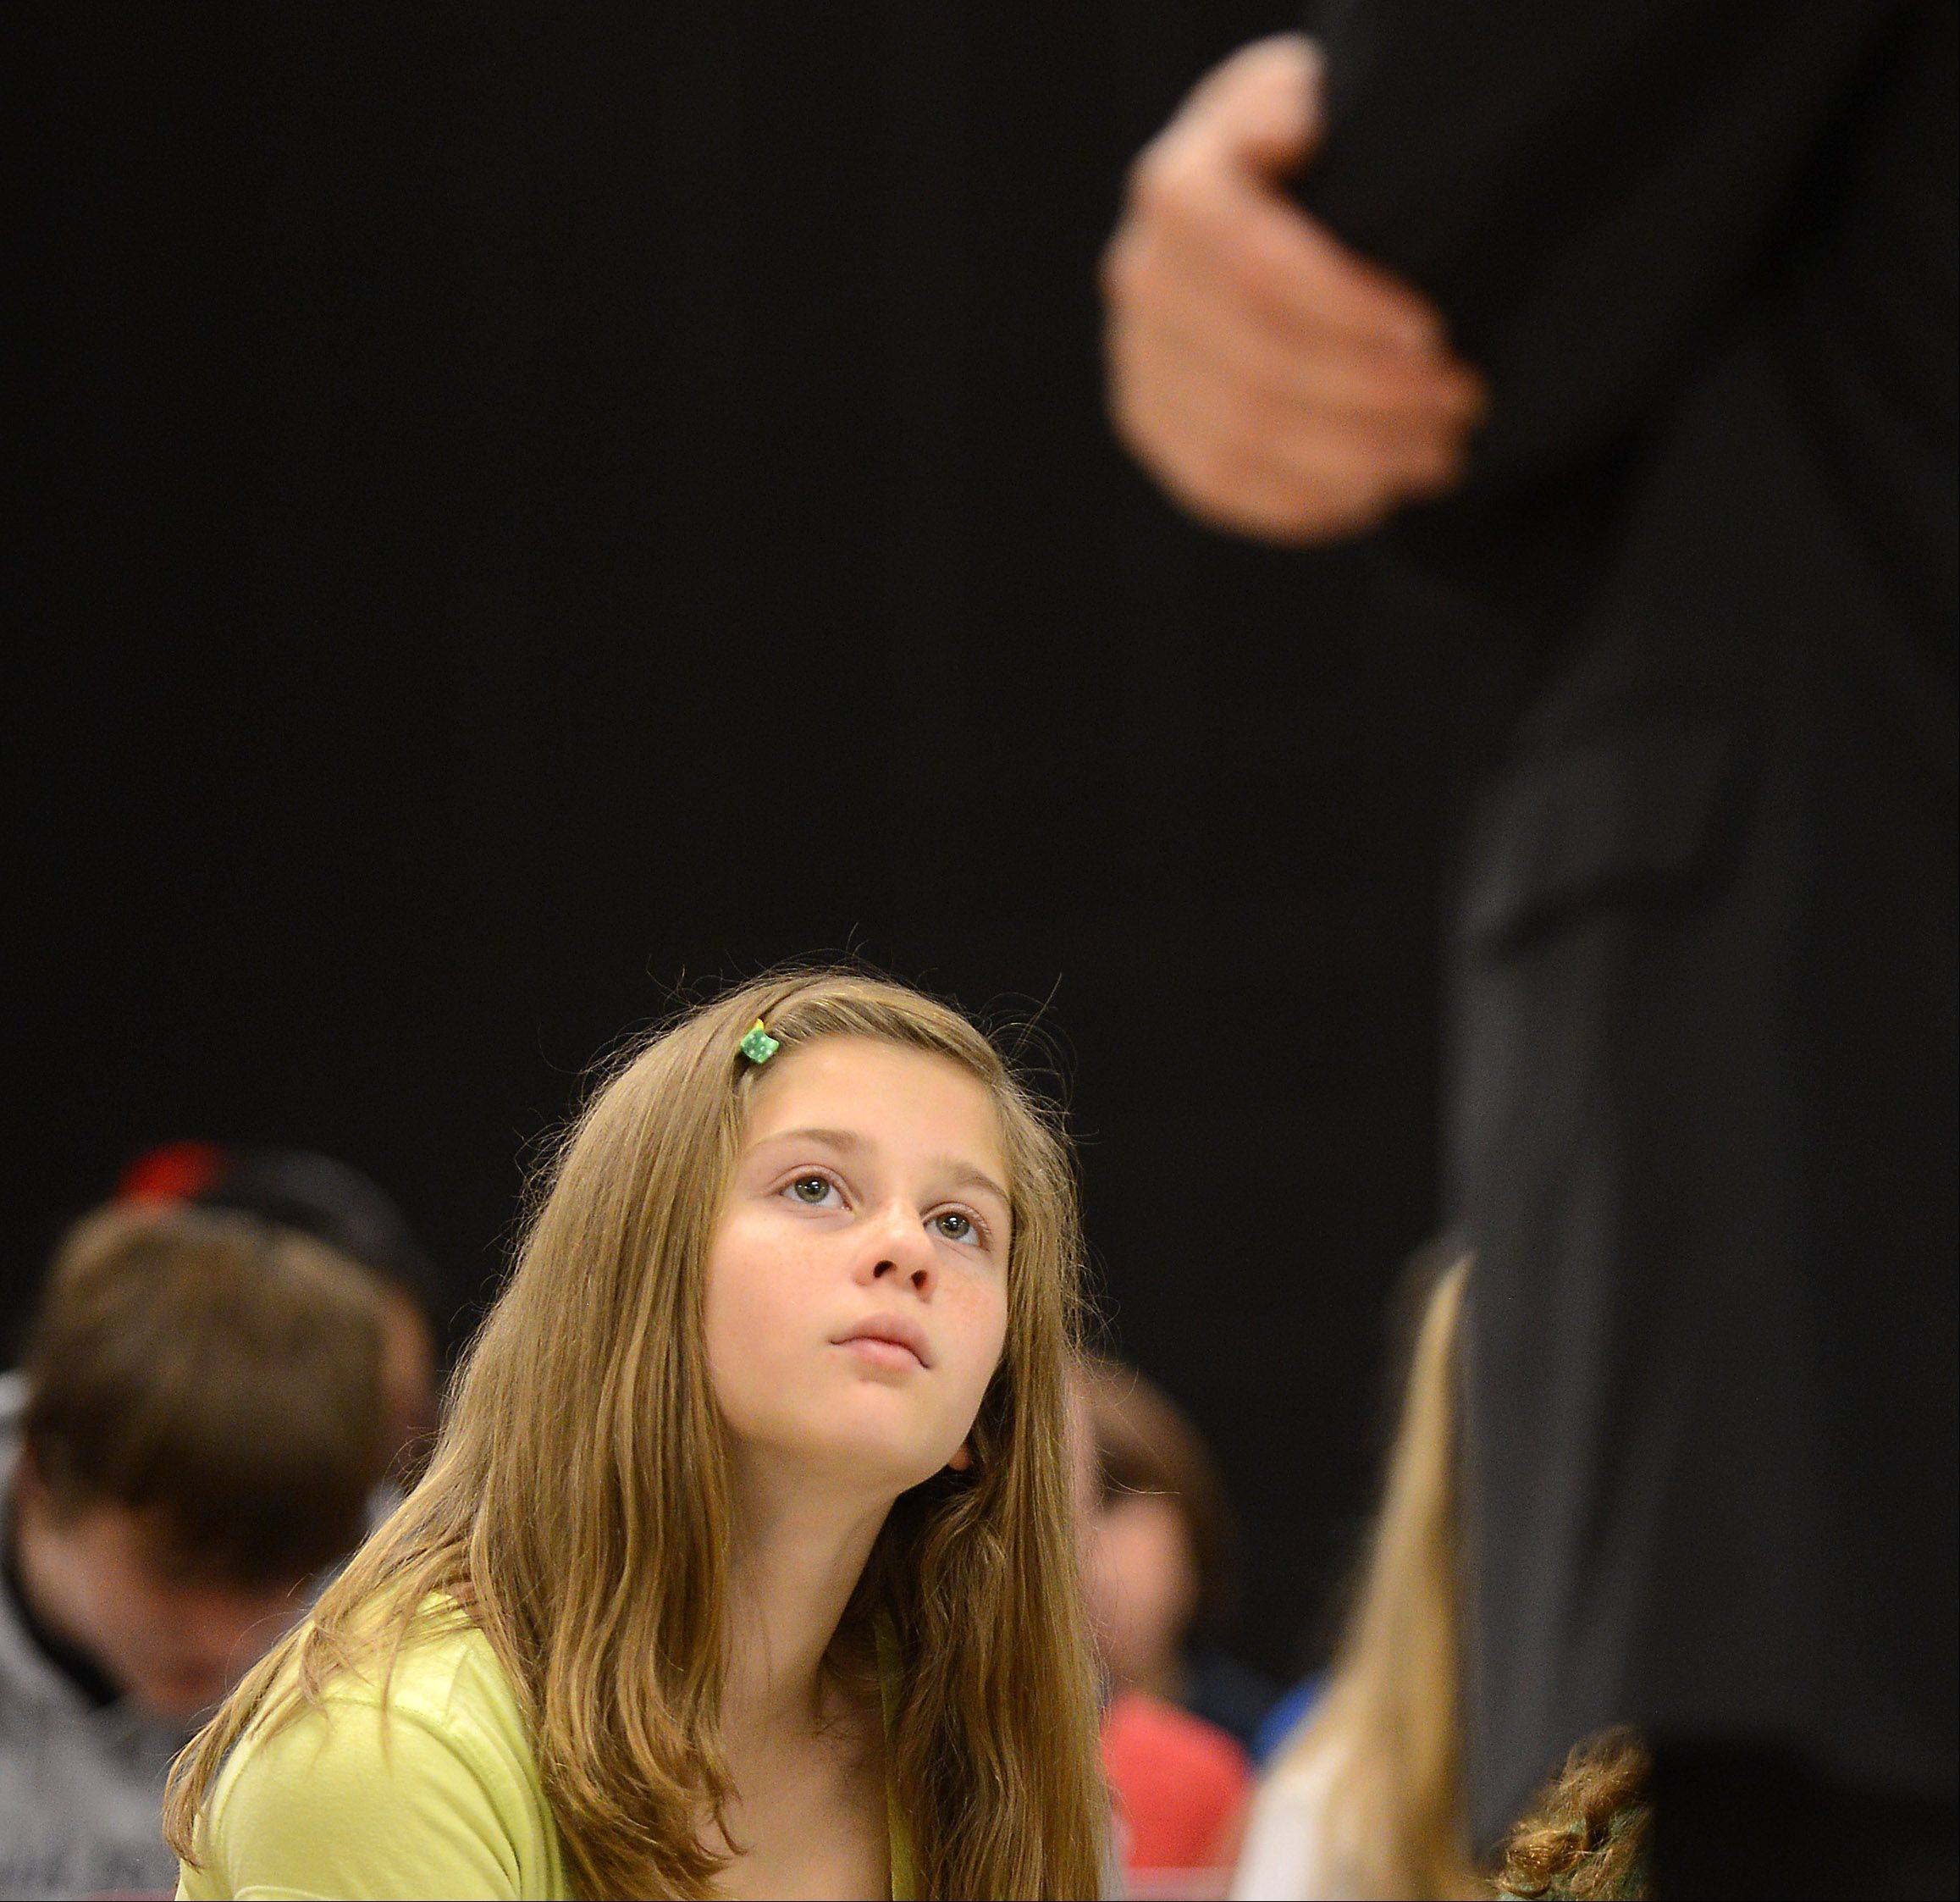 Thompson Middle School sixth-grader Sophia Falese listens as St. Charles City Administrator Mark Koenen answers a question posed by social studies students Wednesday at the school. Koenen was joined by Mayor Ray Rogina.